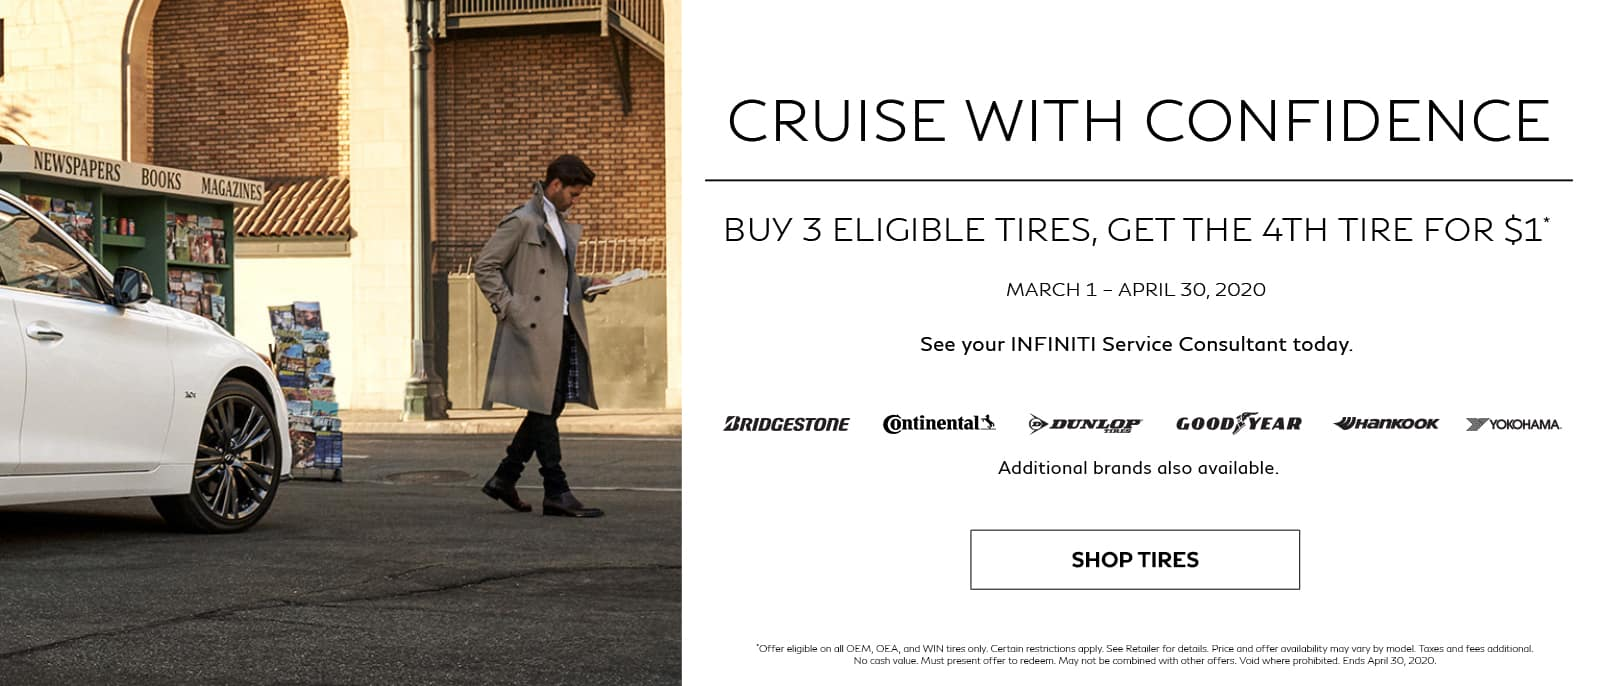 Buy 3 Eligible Tires, Get the 4th for $1